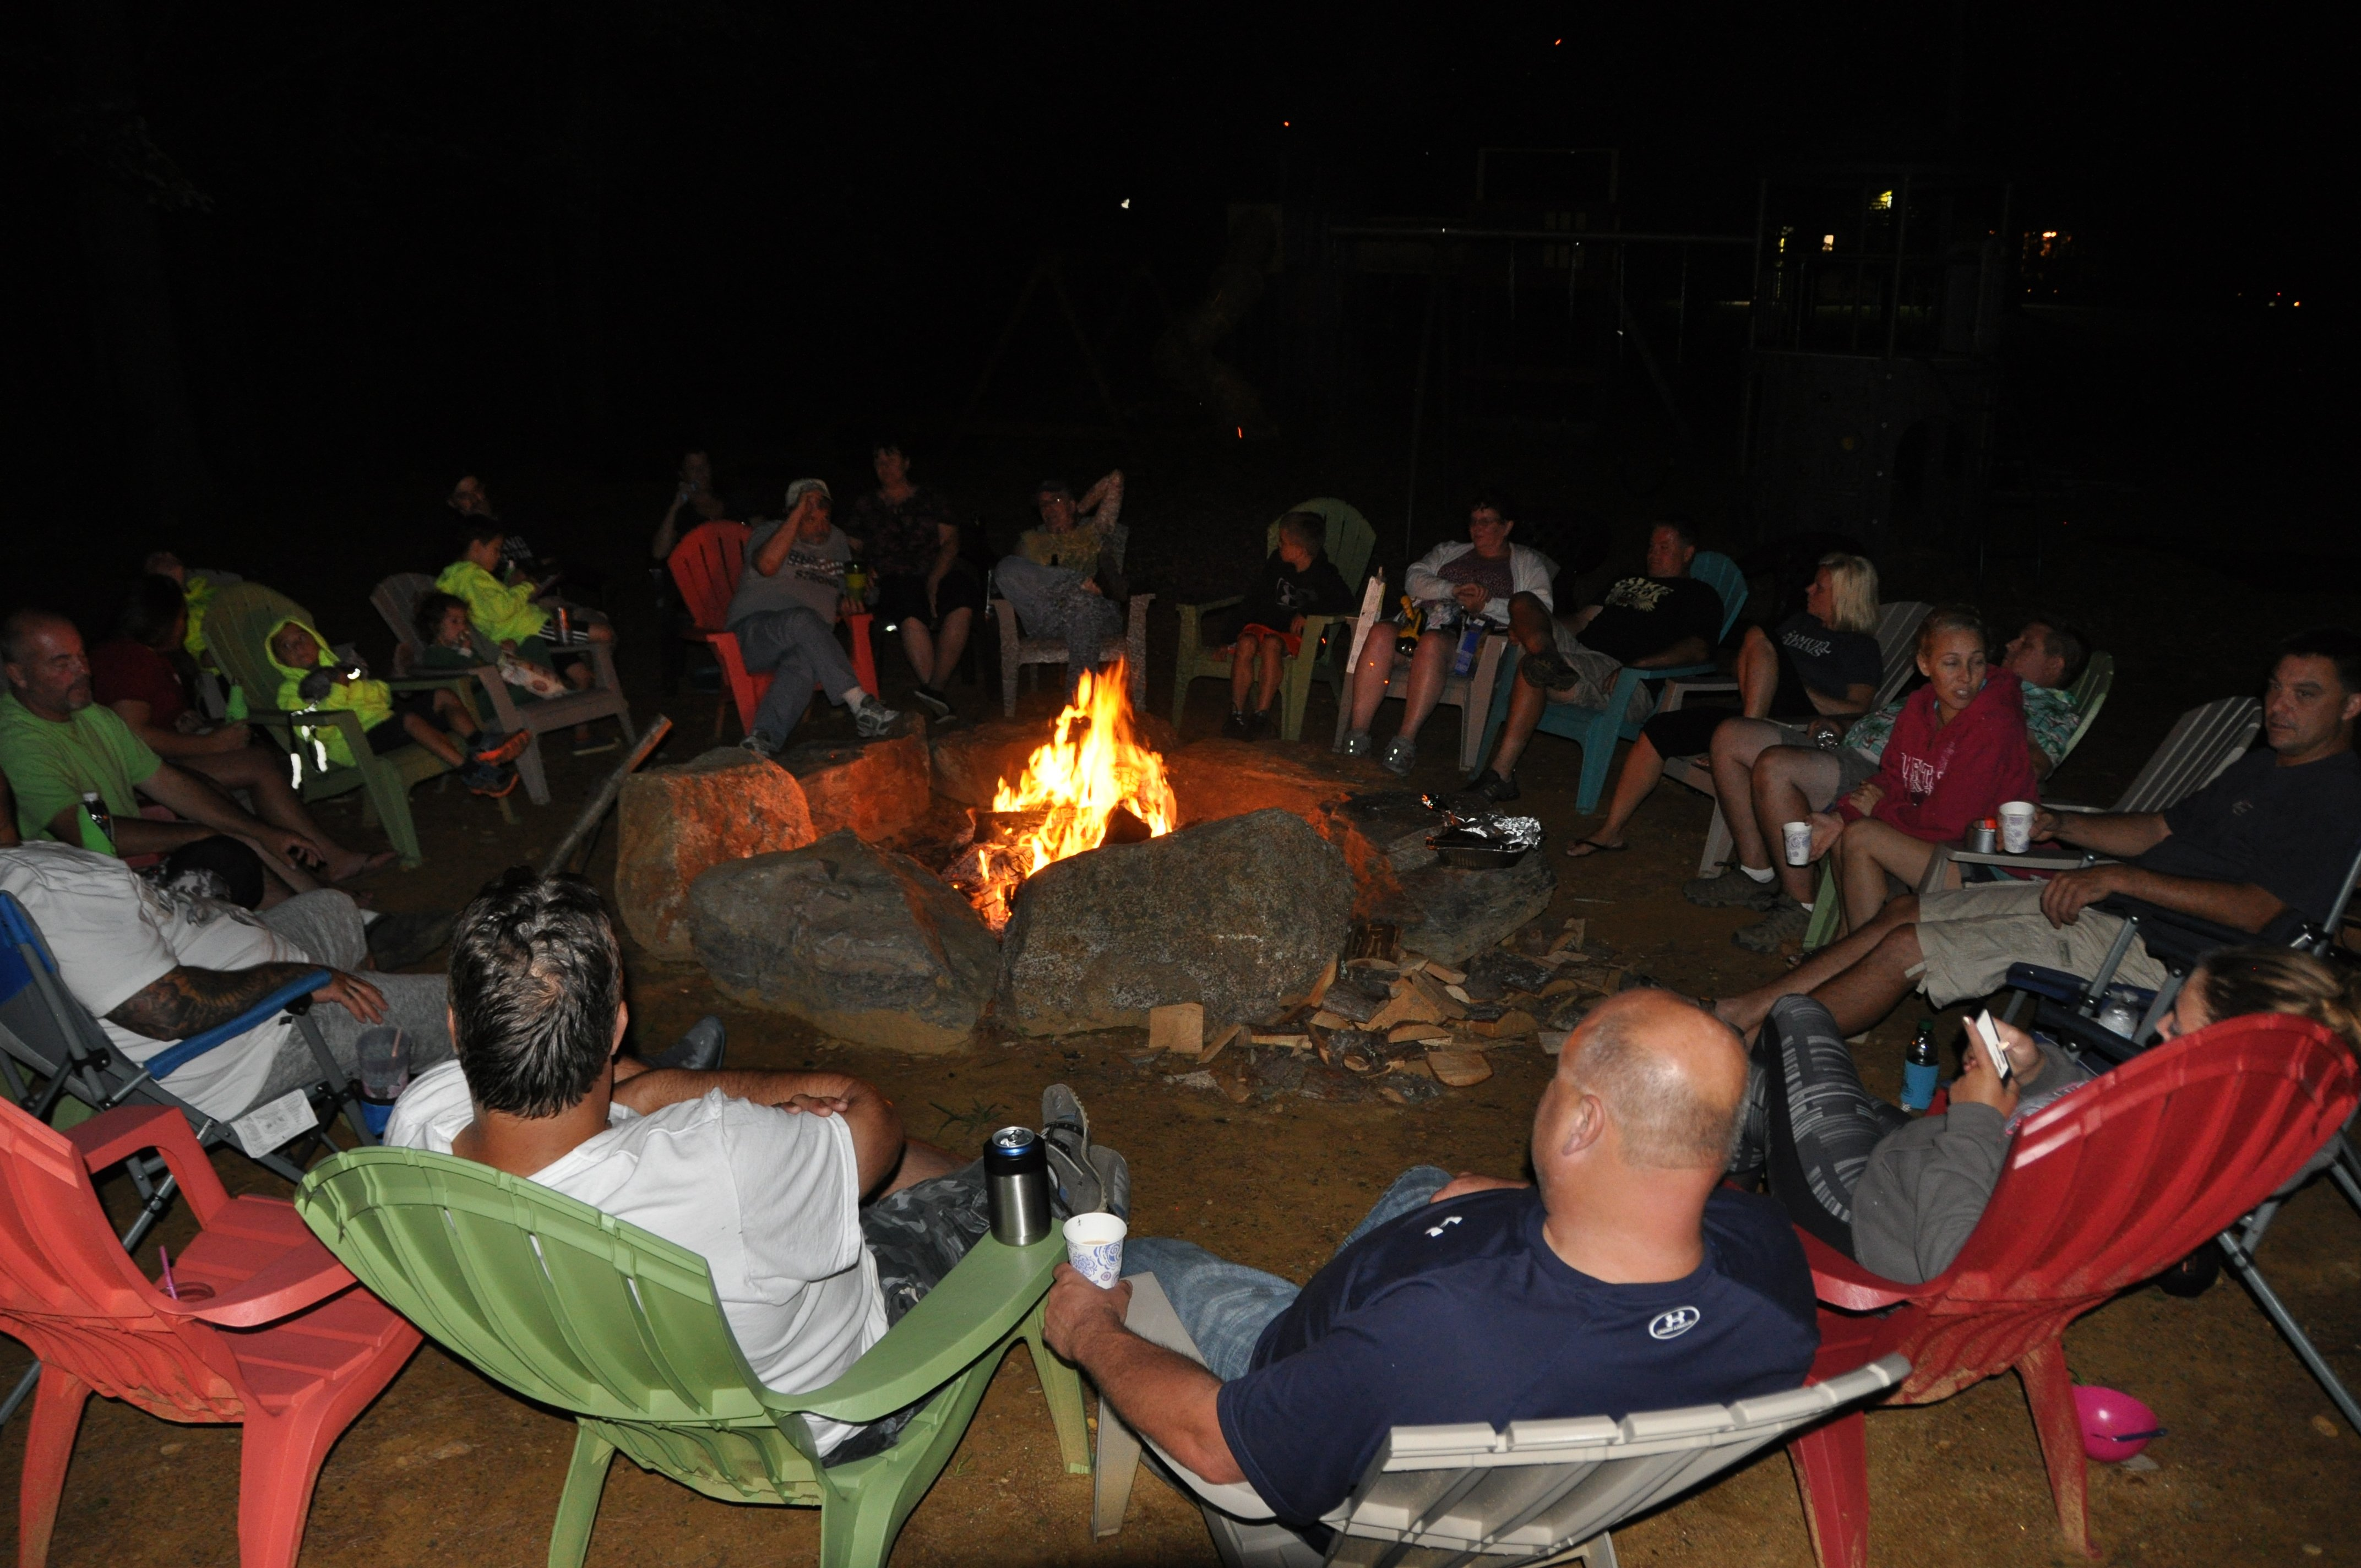 Meet new friends and share stories around the community campfire.